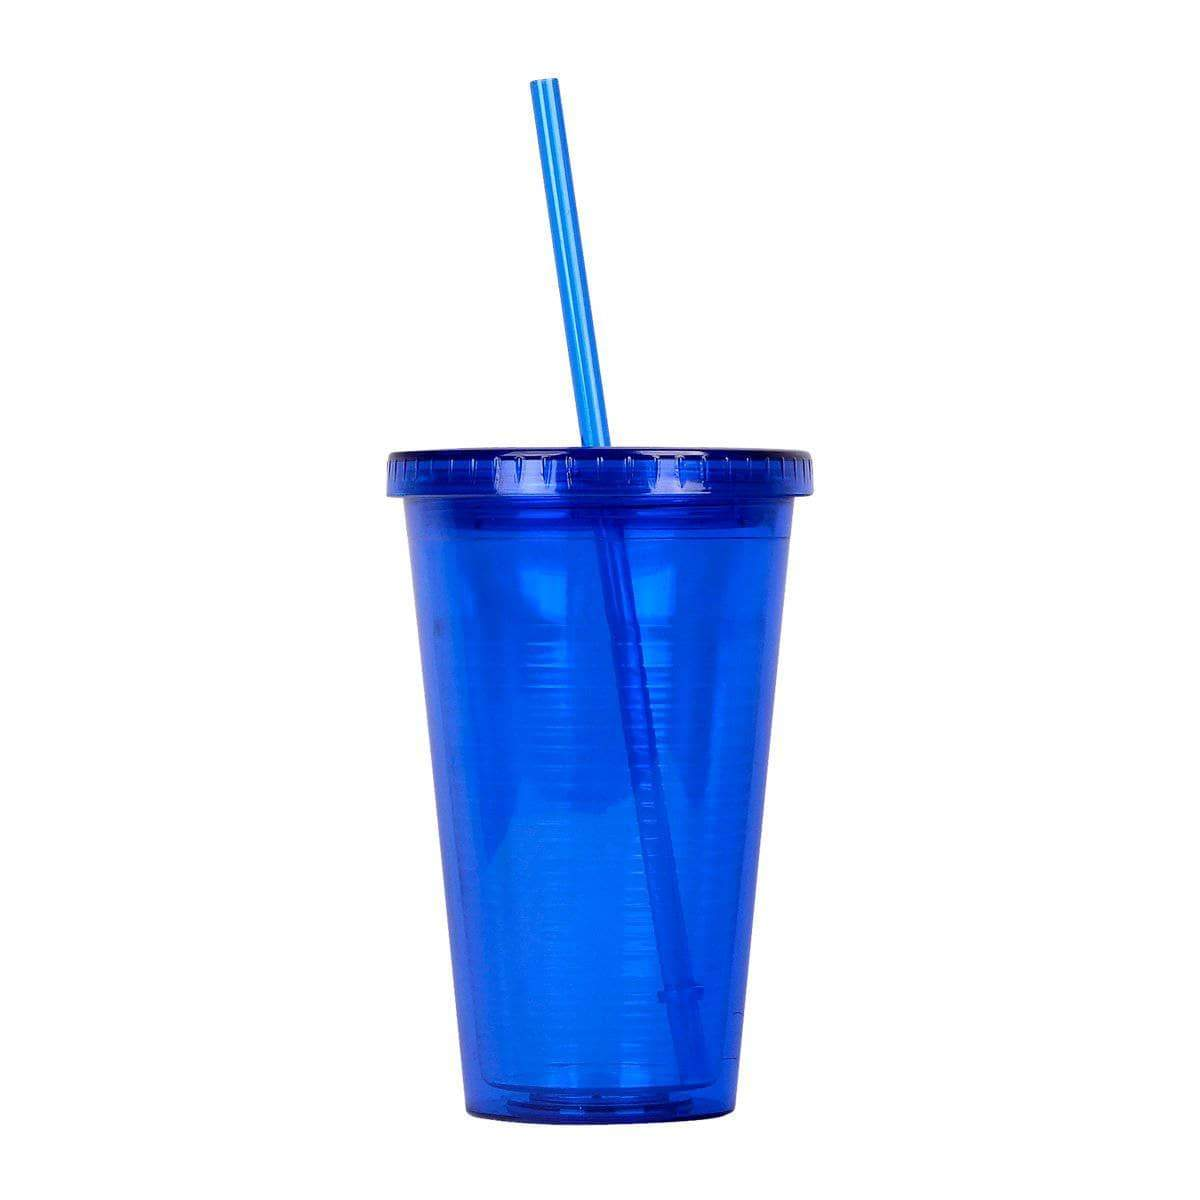 Geo Bottles Tumblers Dark Blue 16oz Double Wall Cup with Straw - BPA Free